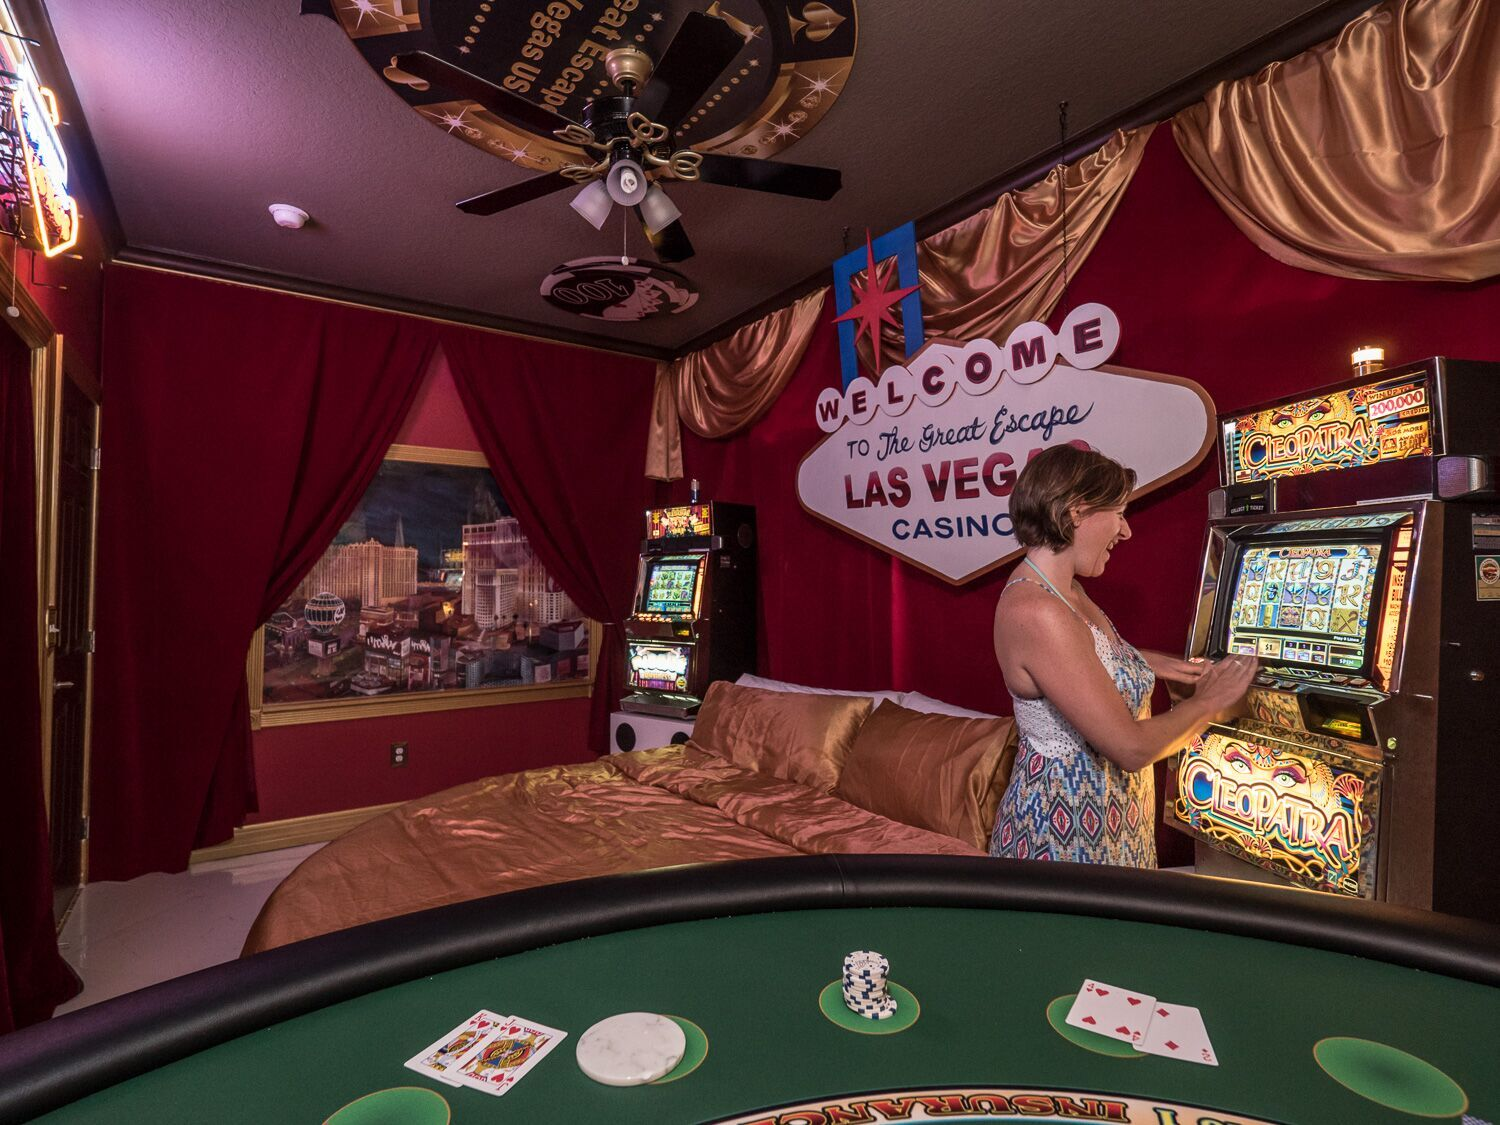 Las Vegas Casino Games Master Suite #2 at Florida - Disney-Area Vacation Rental - with slot machines!